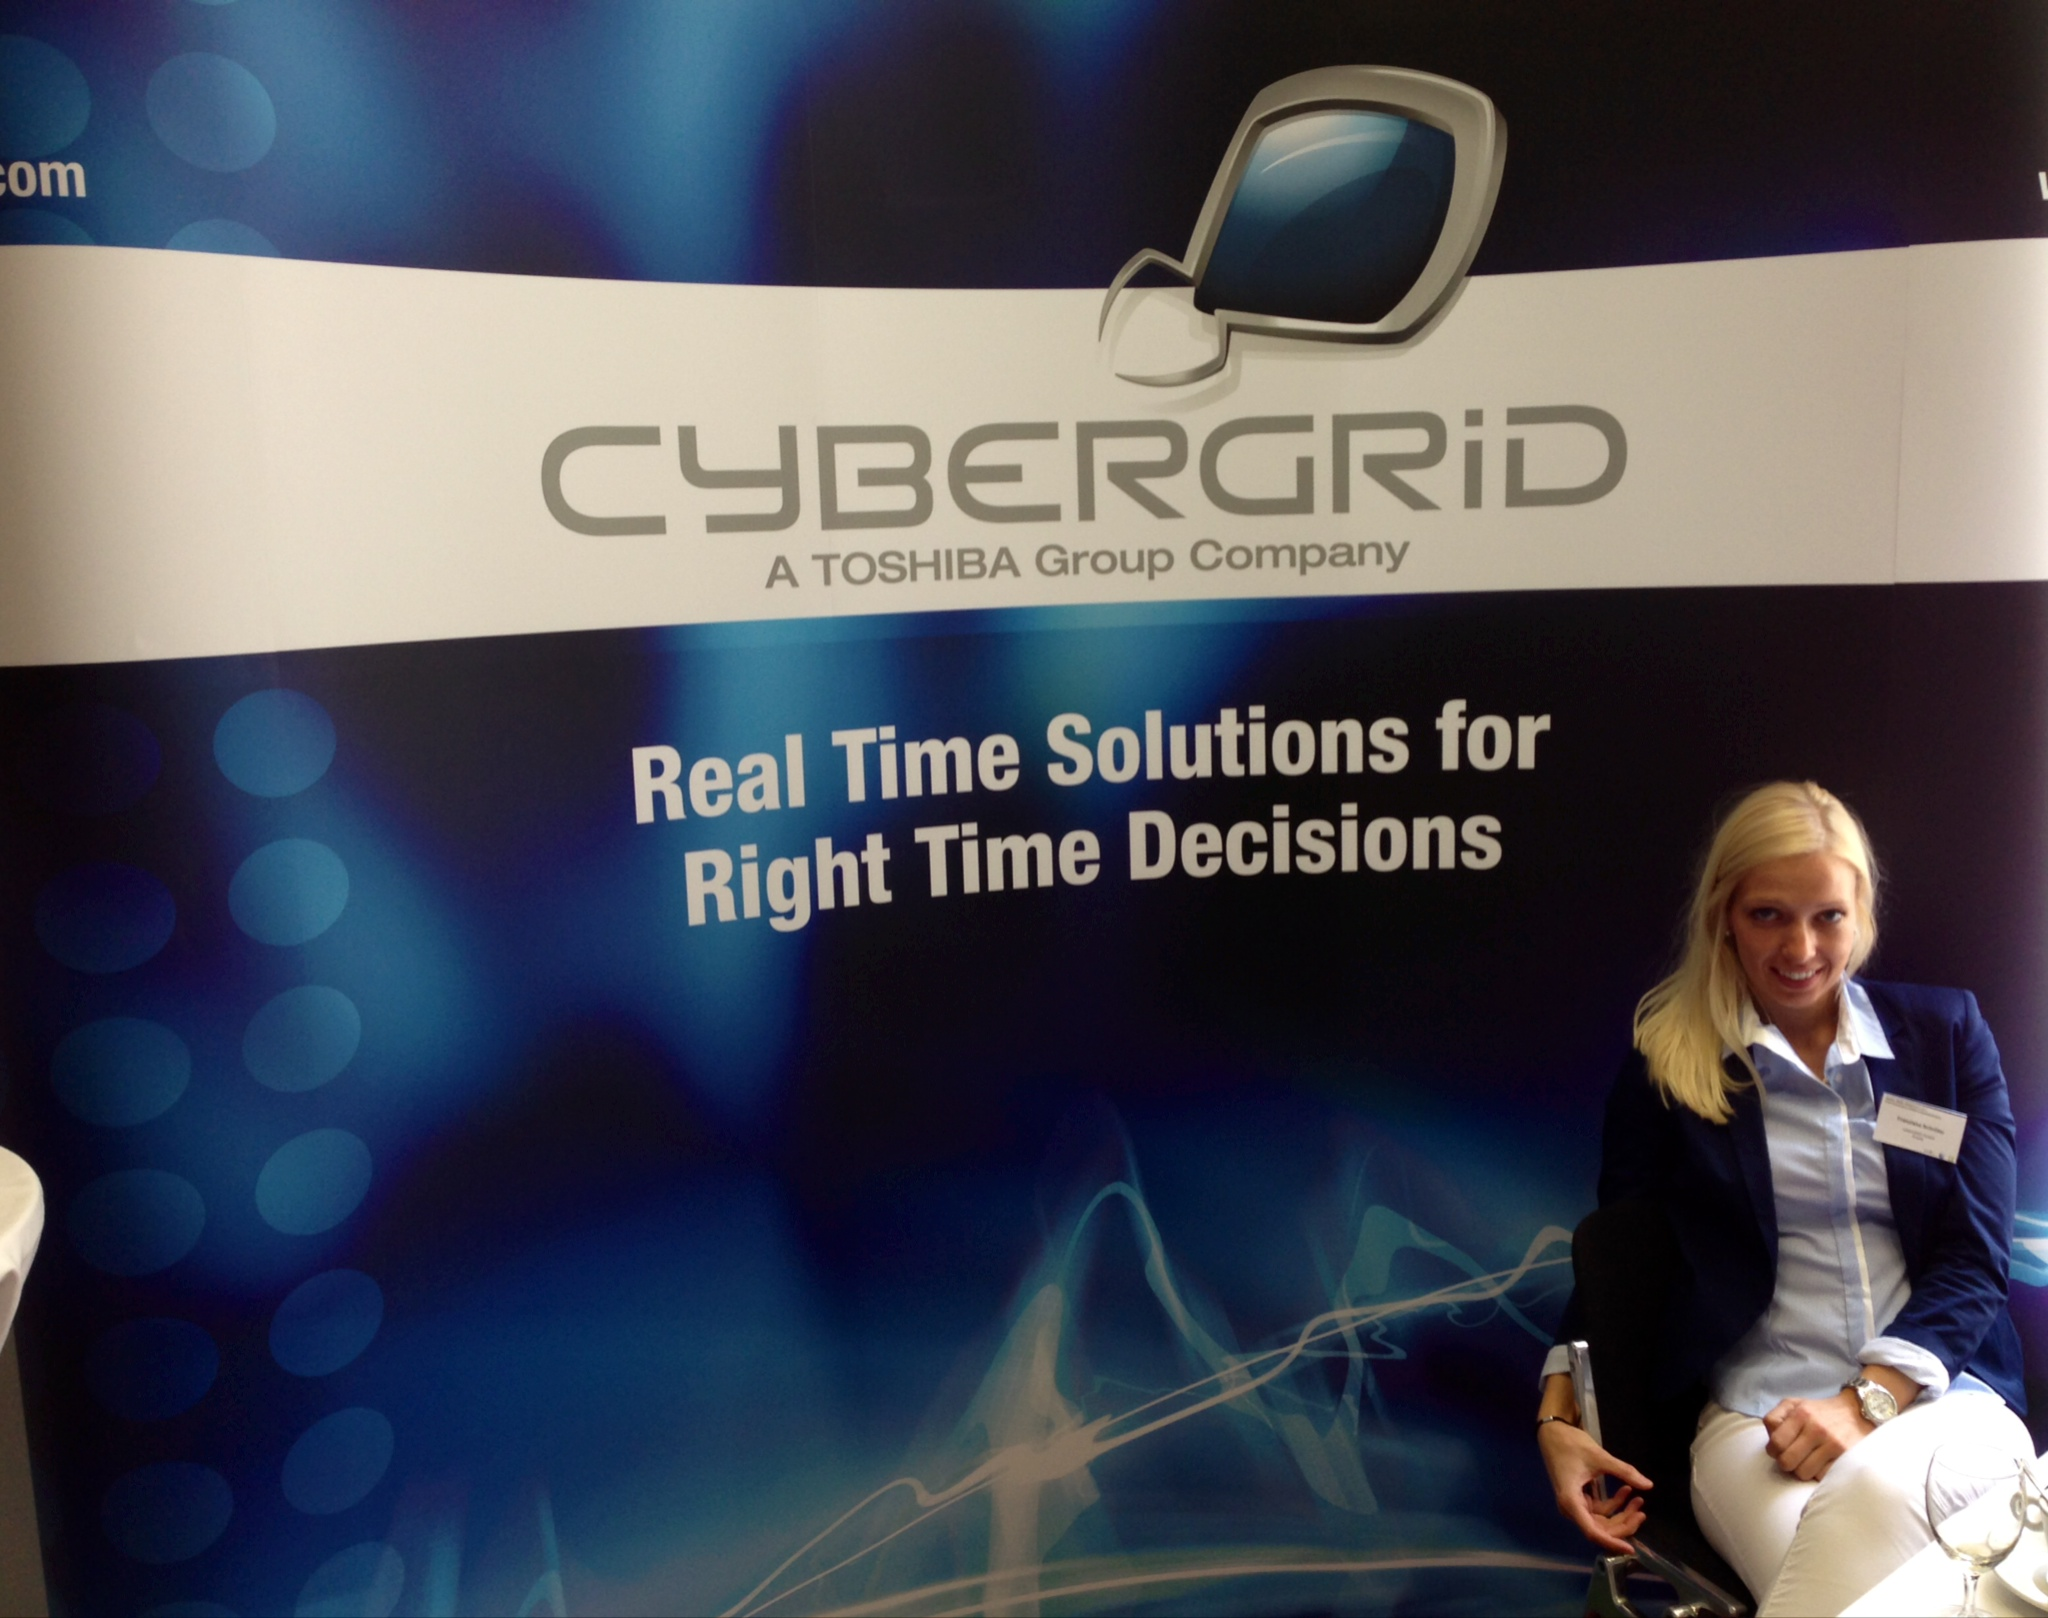 cyberGRID booth